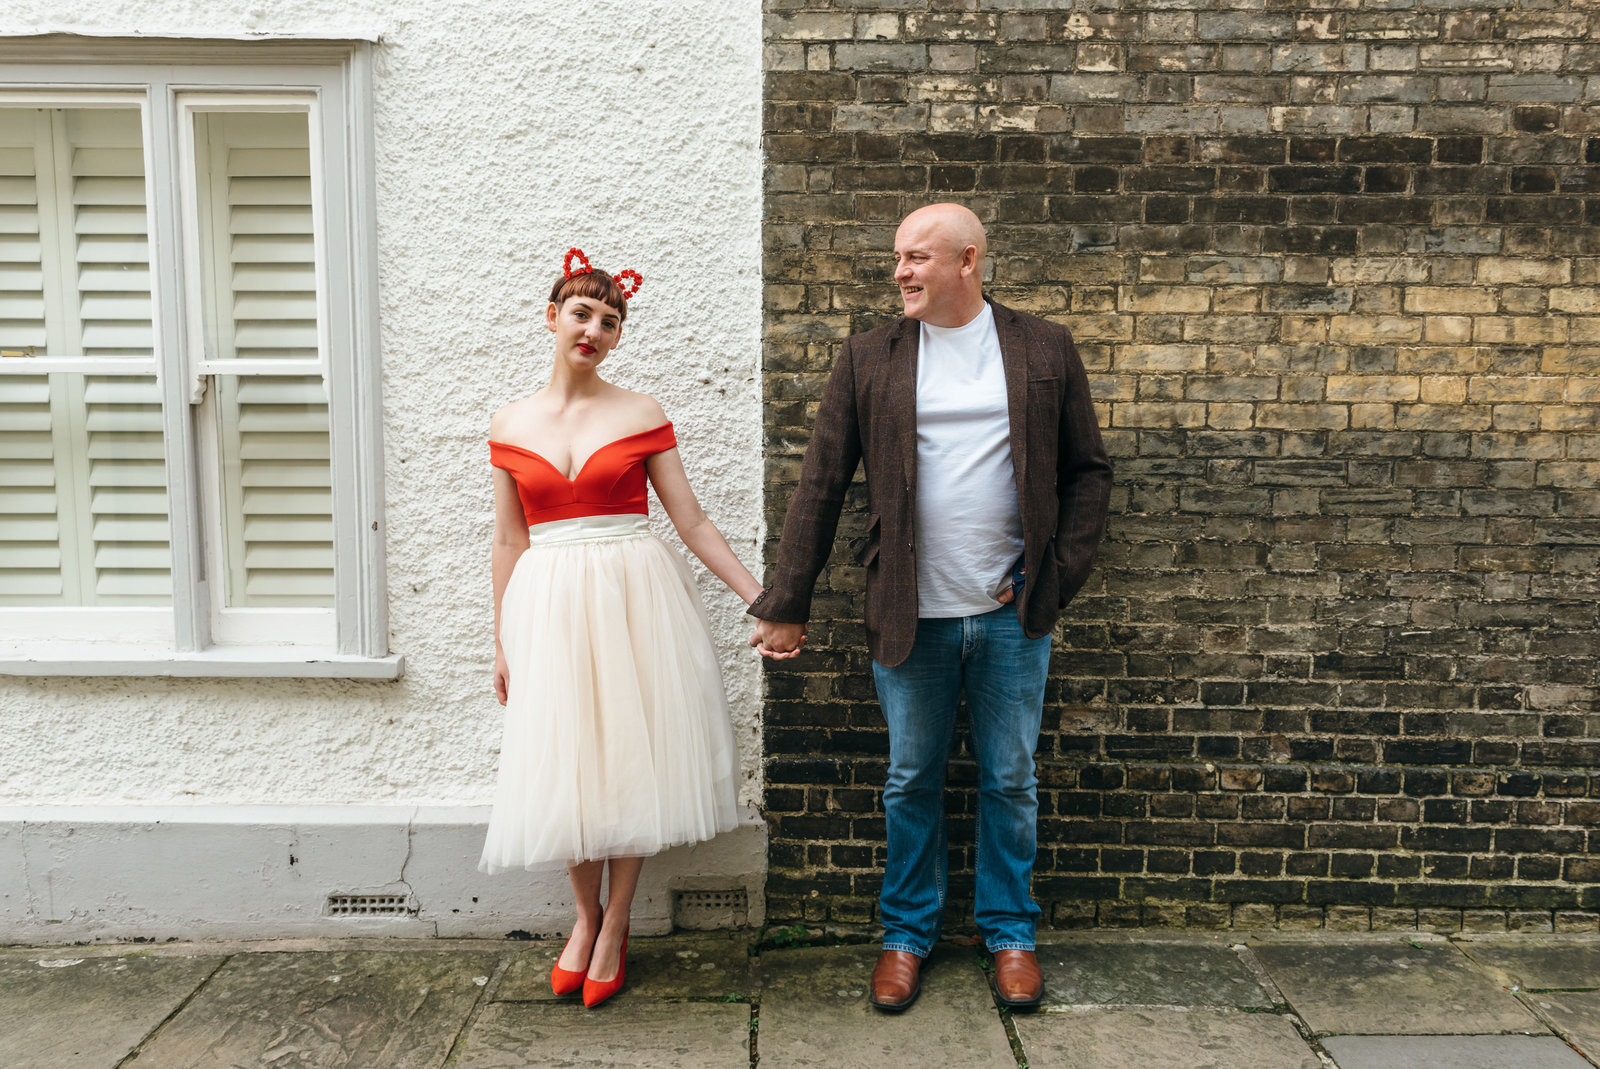 Lisa and Neil stand in front of a brick wall in Norwich. and hold hands. Lisa is looking at the camera and Neil is looking at Lisa and smiling.